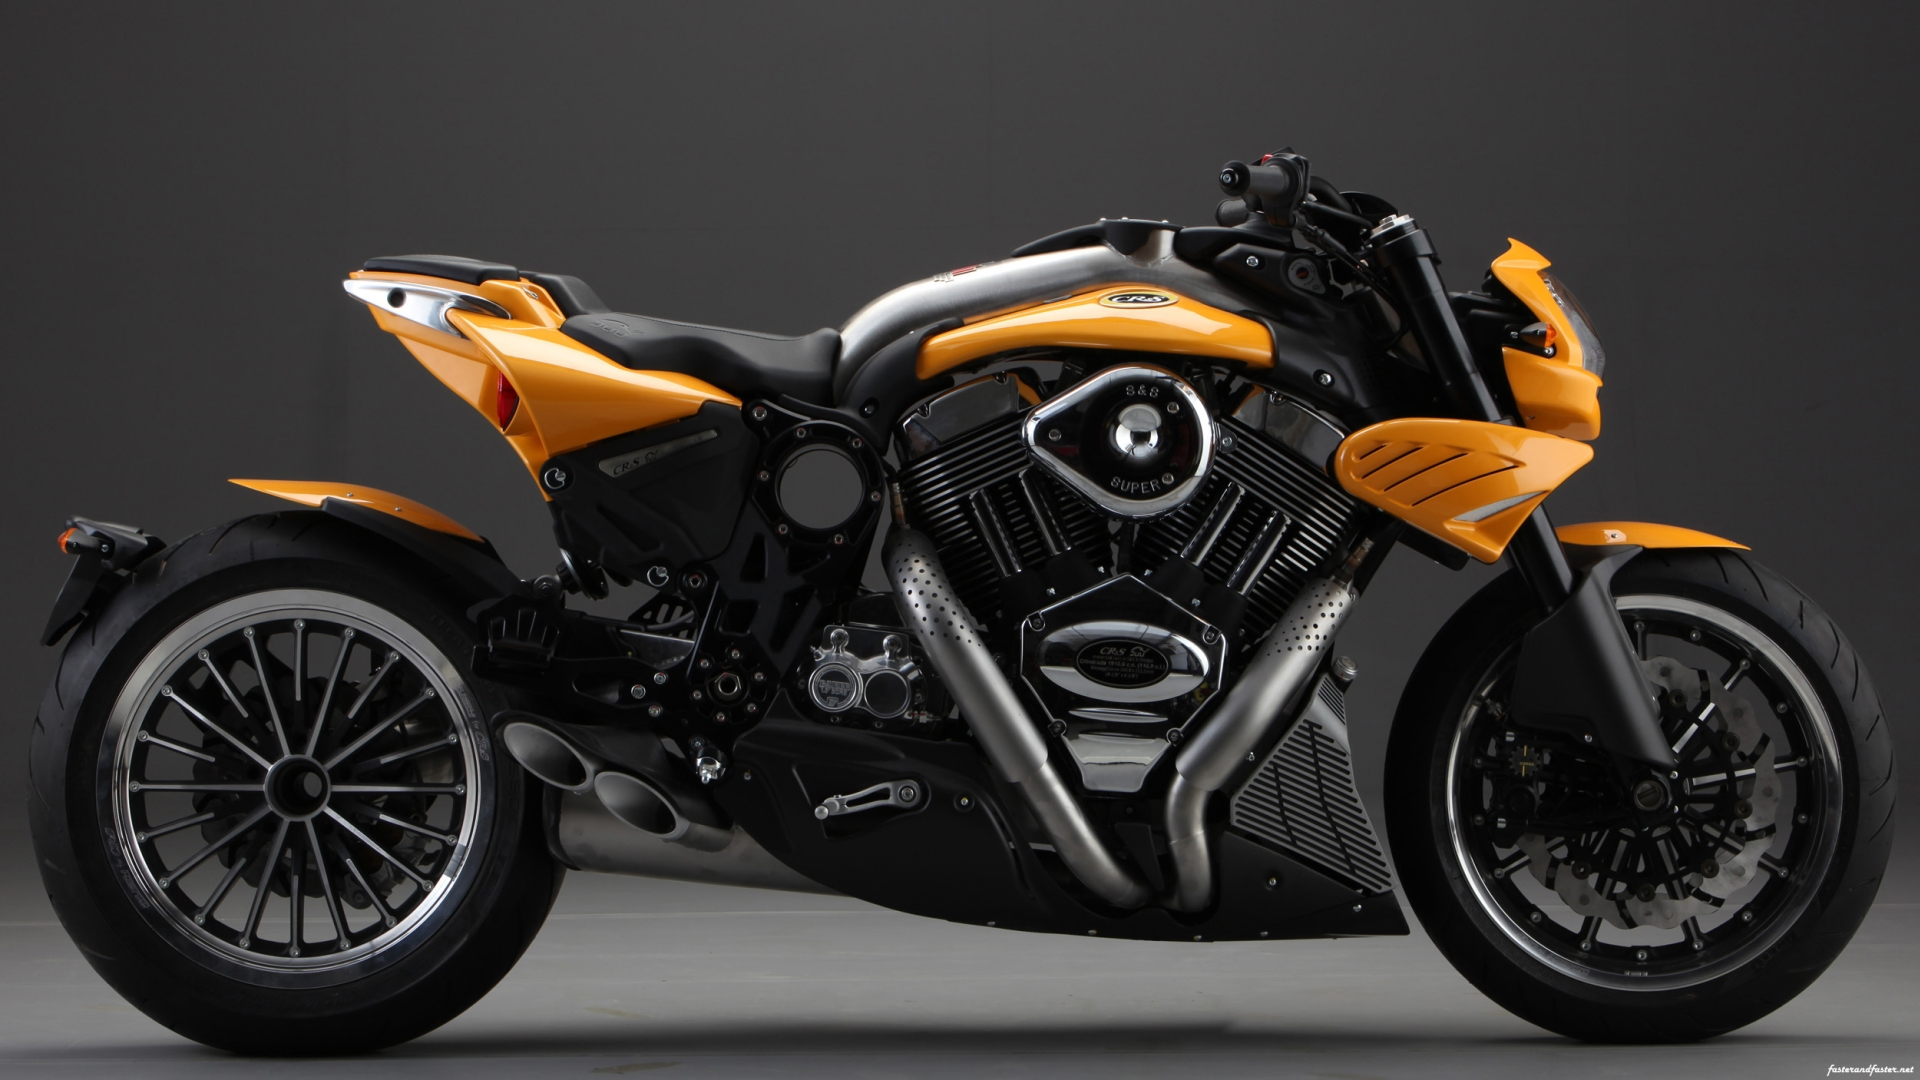 cr duu motorcycles awesome expensive harley motorcycle breakout davidson action autoevolution lifestyles carbonart